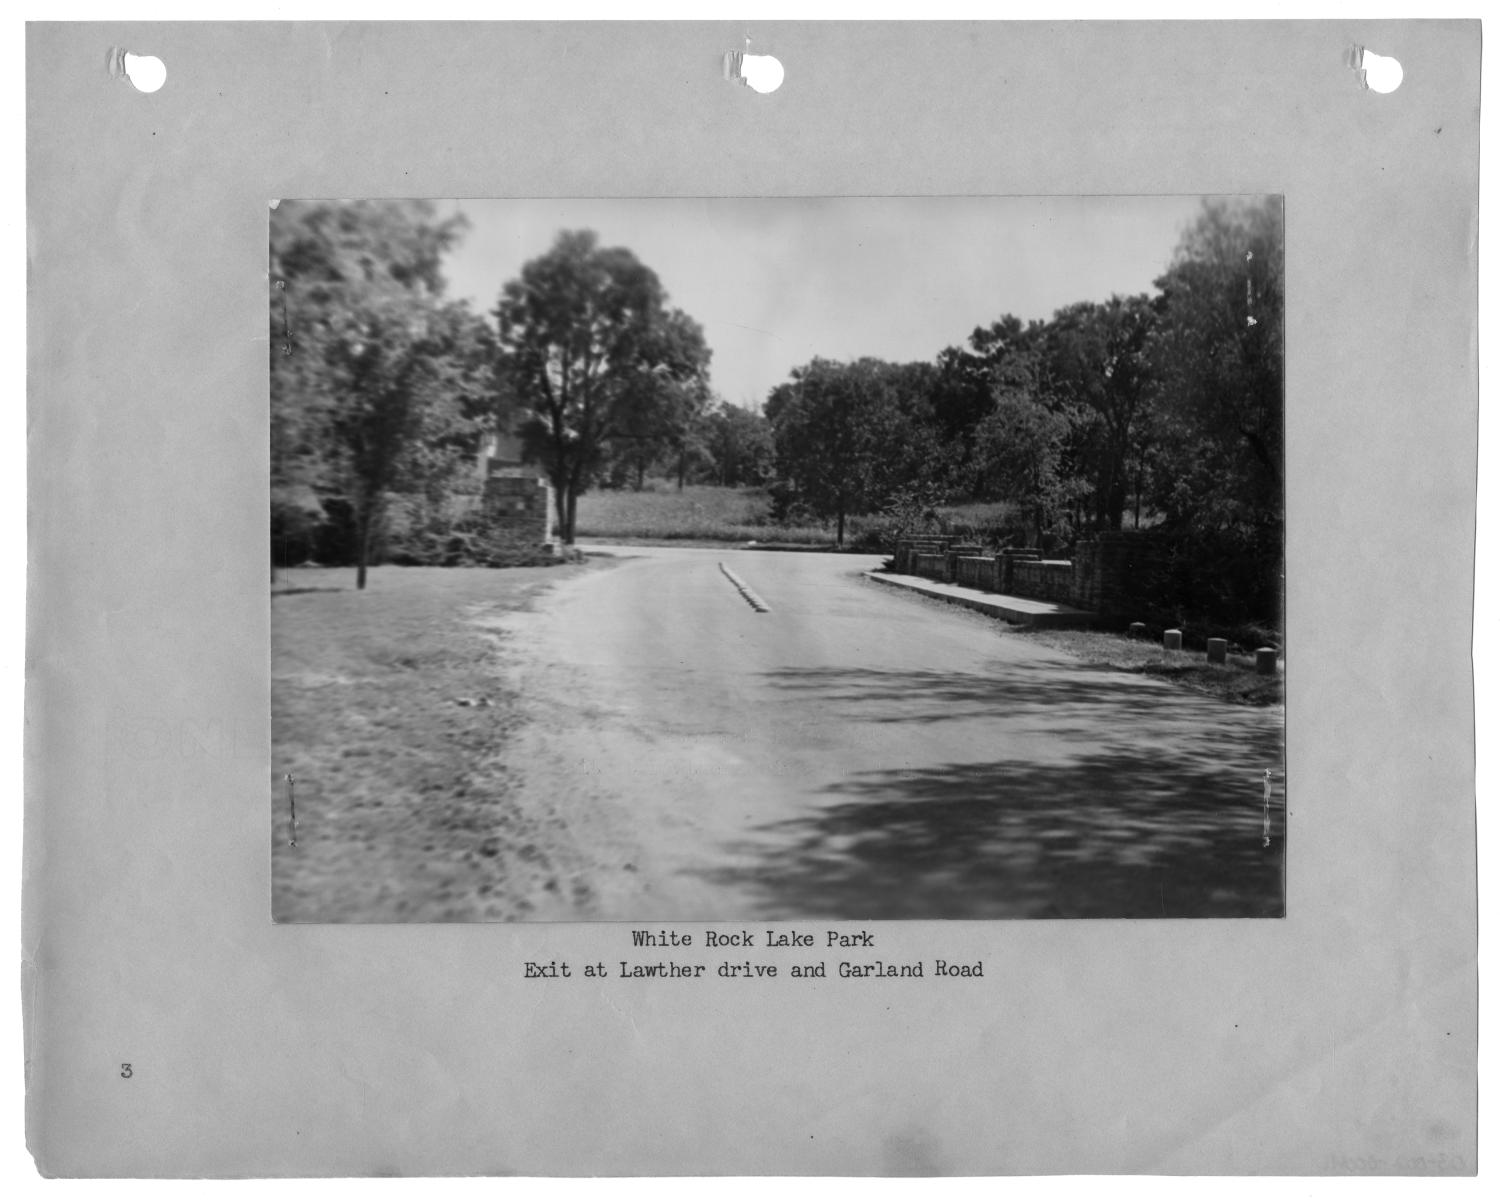 """[Photograph of White Rock Lake Park Exit], Photograph of a driveway leading out of White Rock Lake Park. There is a small stone wall on the right side of the road and a stone column on the left side of the drive. There are trees on either side of the road and Garland Road is visible past the park entrance. The photograph is attached to a page labeled """"3""""; text under the image says """"White Rock Lake Park, Exit at Lawther drive and Garland Road."""","""